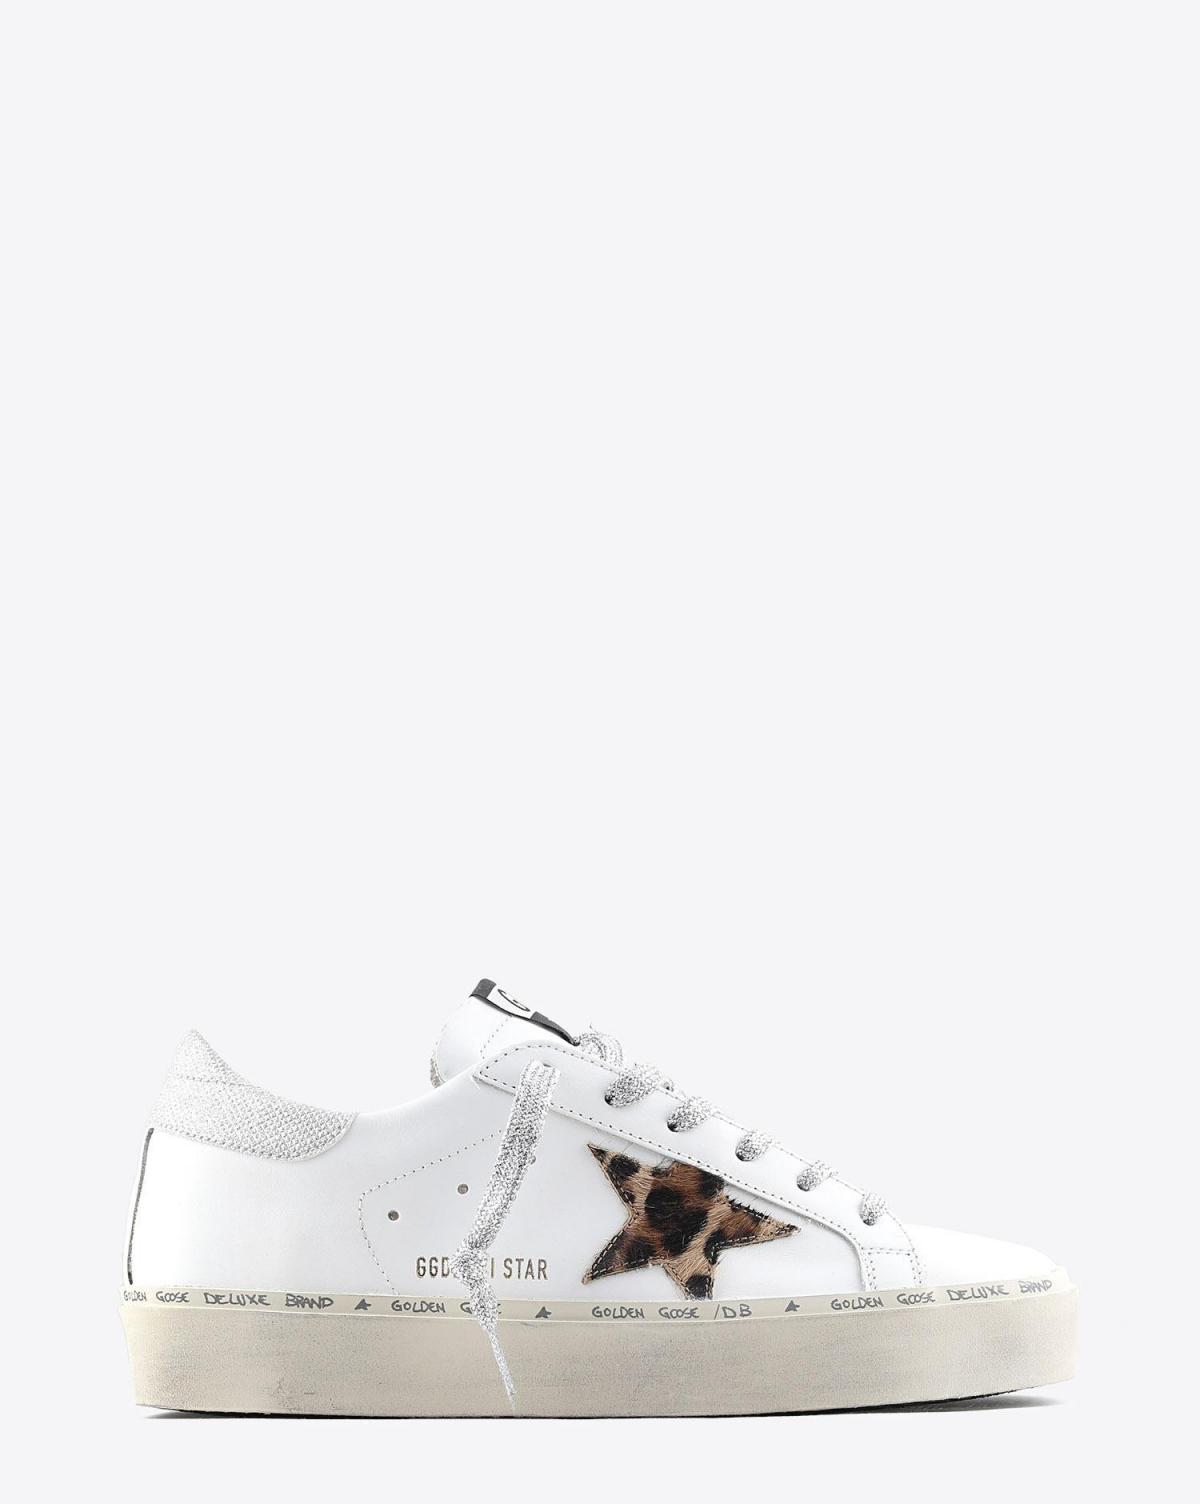 Golden Goose Woman Pré-Collection Sneakers compensées Hi Star cuir blanc étoile Pony léopard